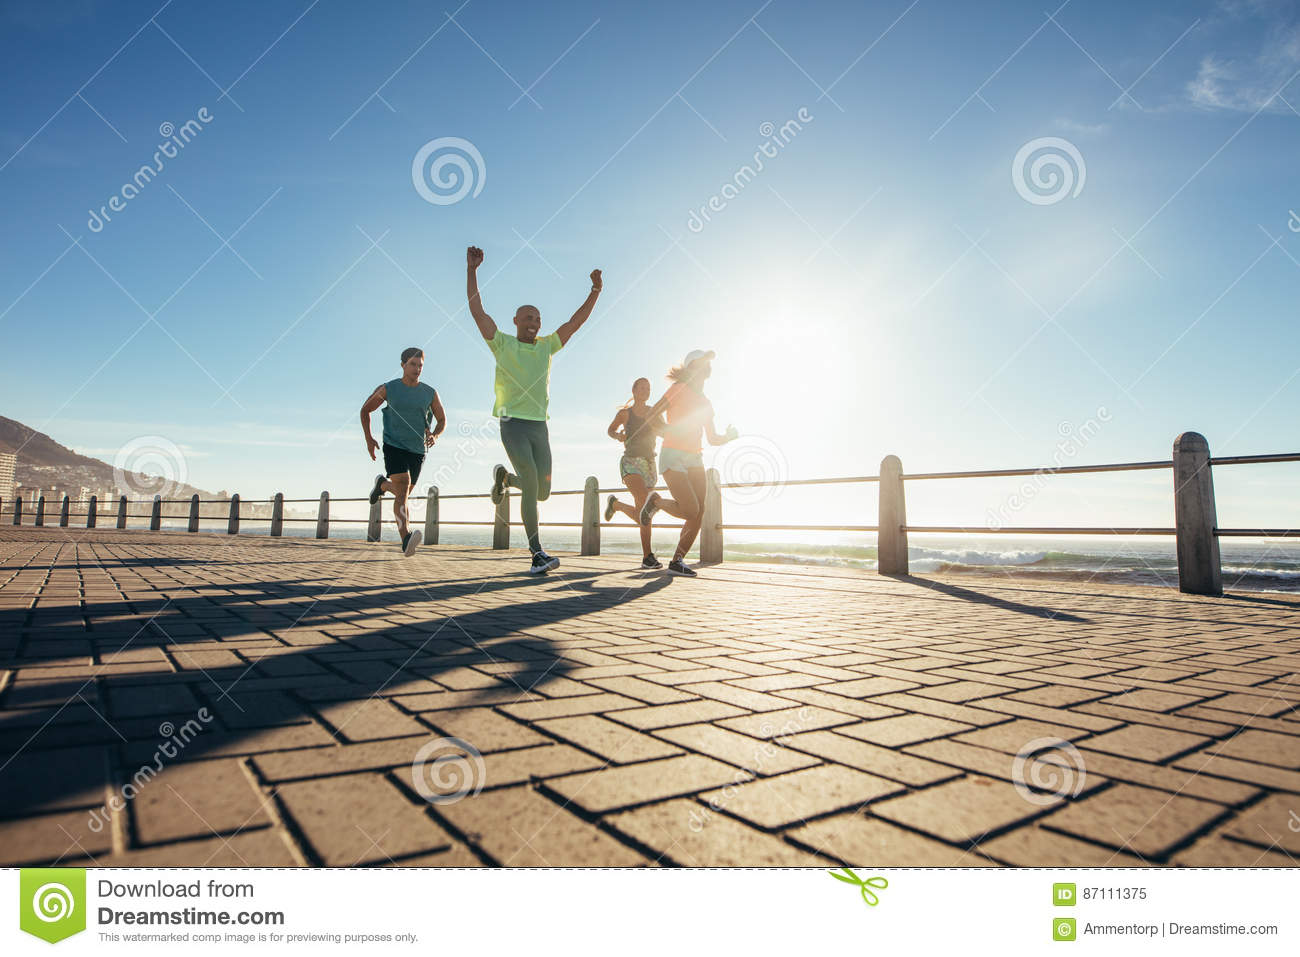 Group of young people running along seaside